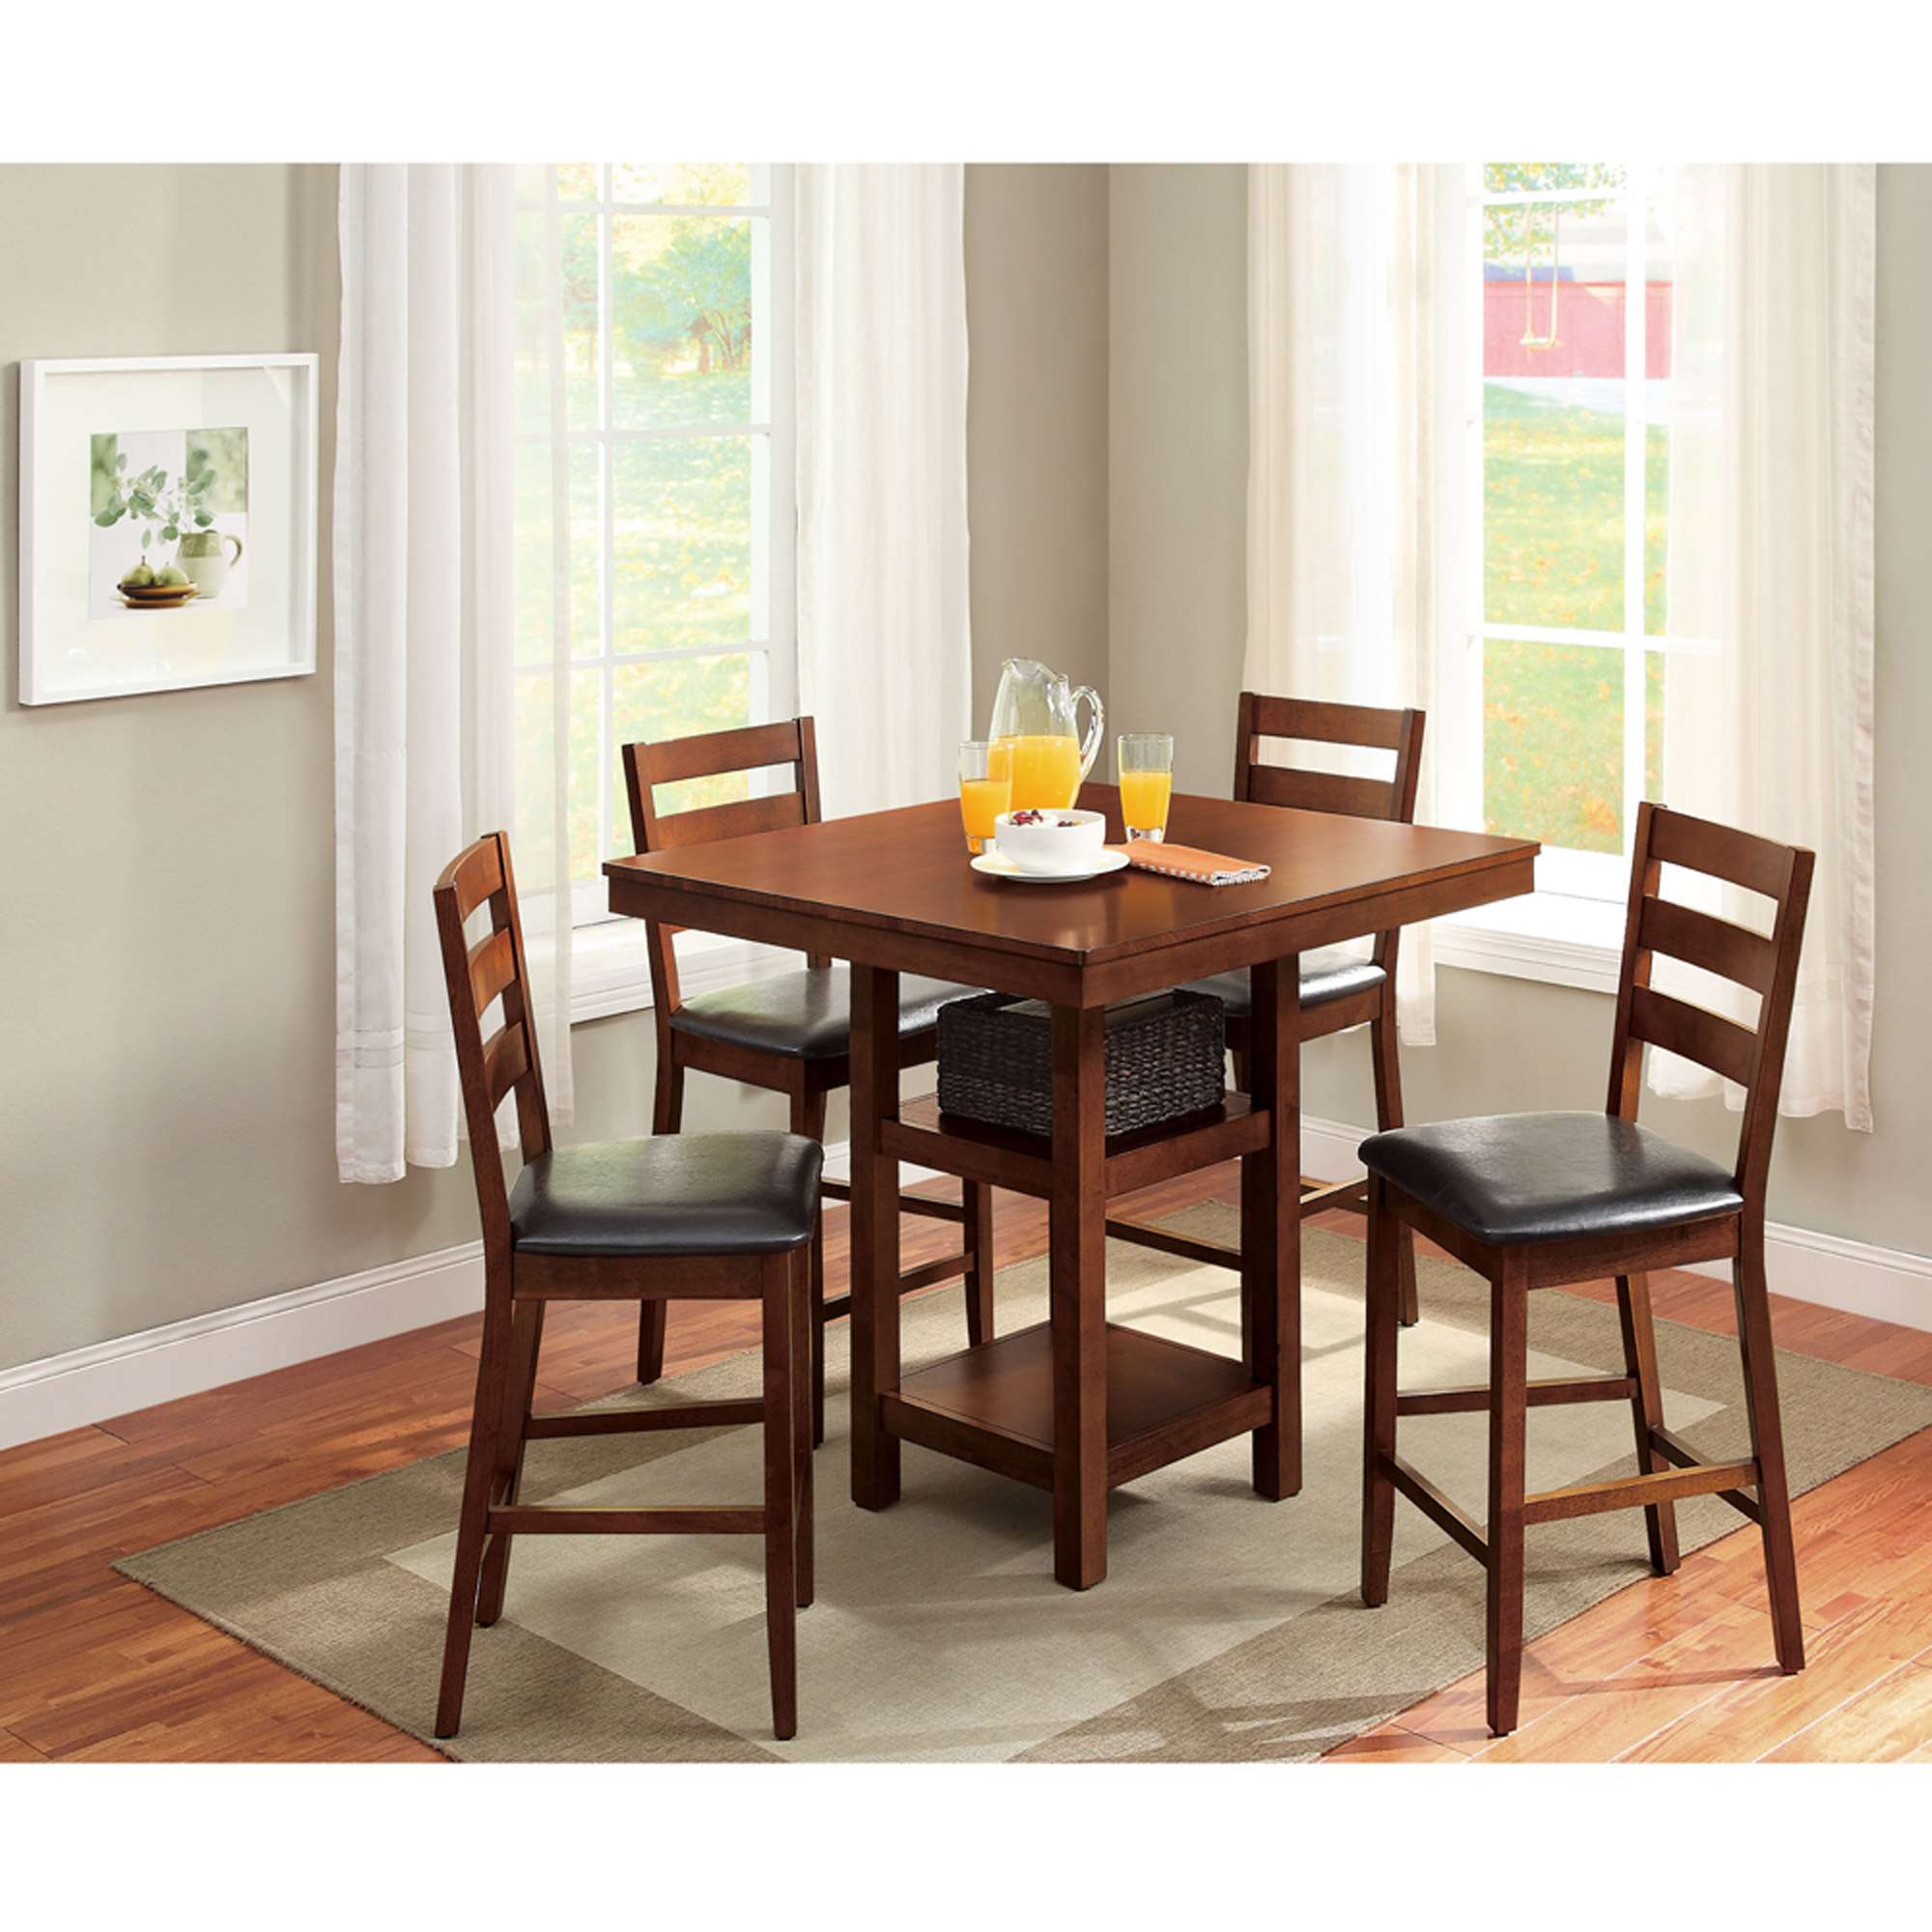 kitchen dining furniture walmartcom. beautiful ideas. Home Design Ideas